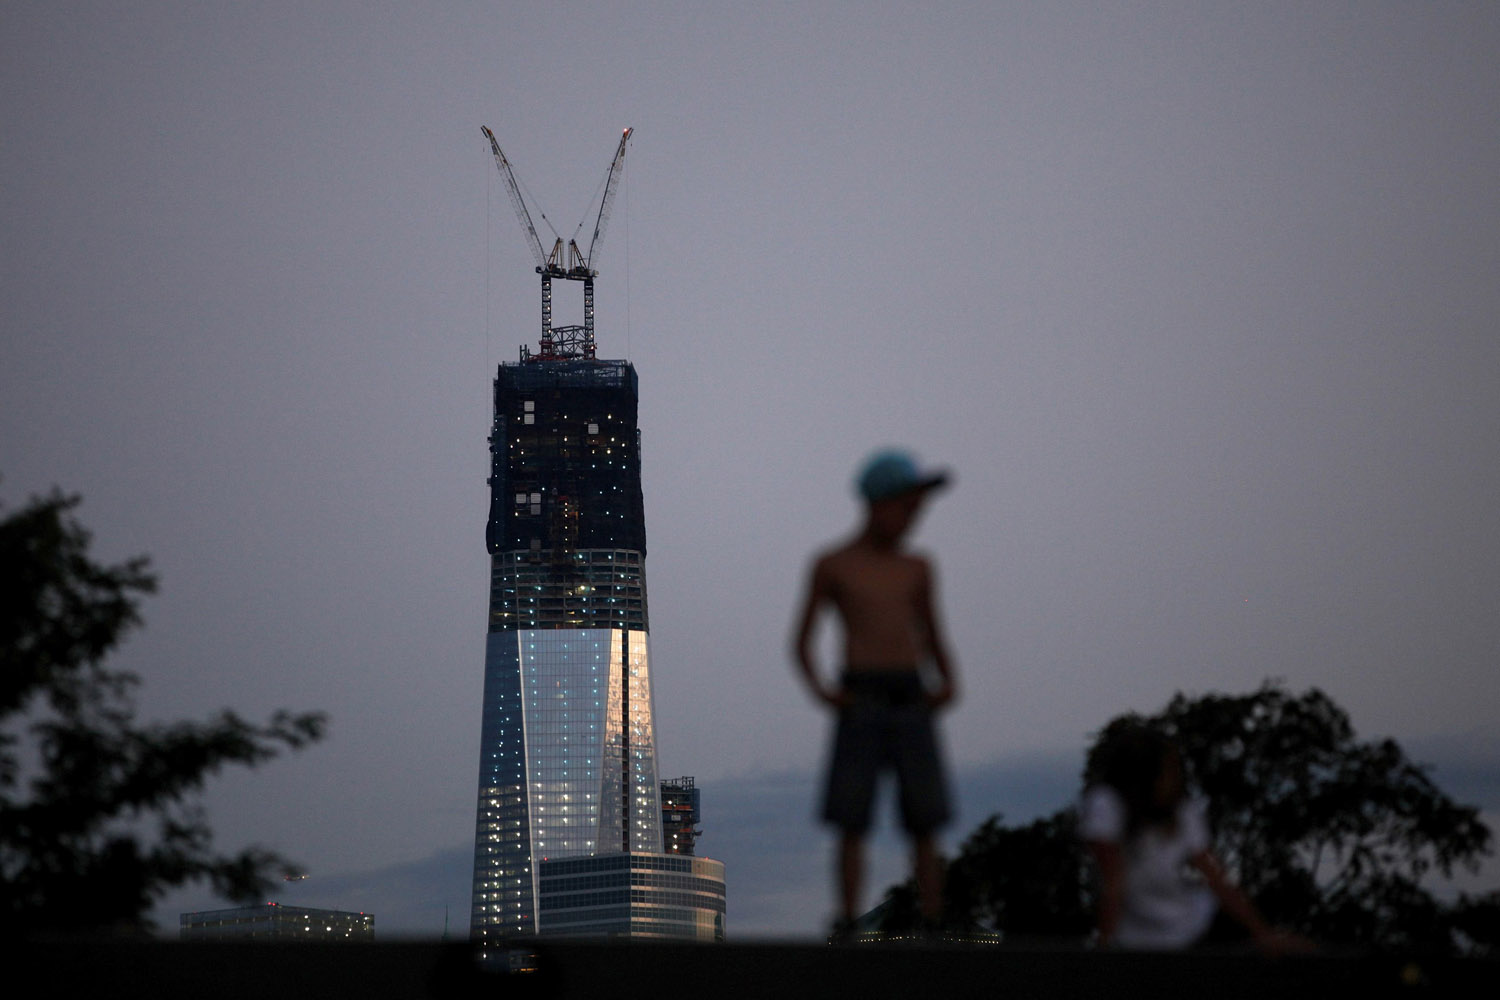 Sept. 9, 2012. One World Trade Center stands tall on the skyline of New York's Lower Manhattan as a boy stands on a pier in Hoboken, N.J.